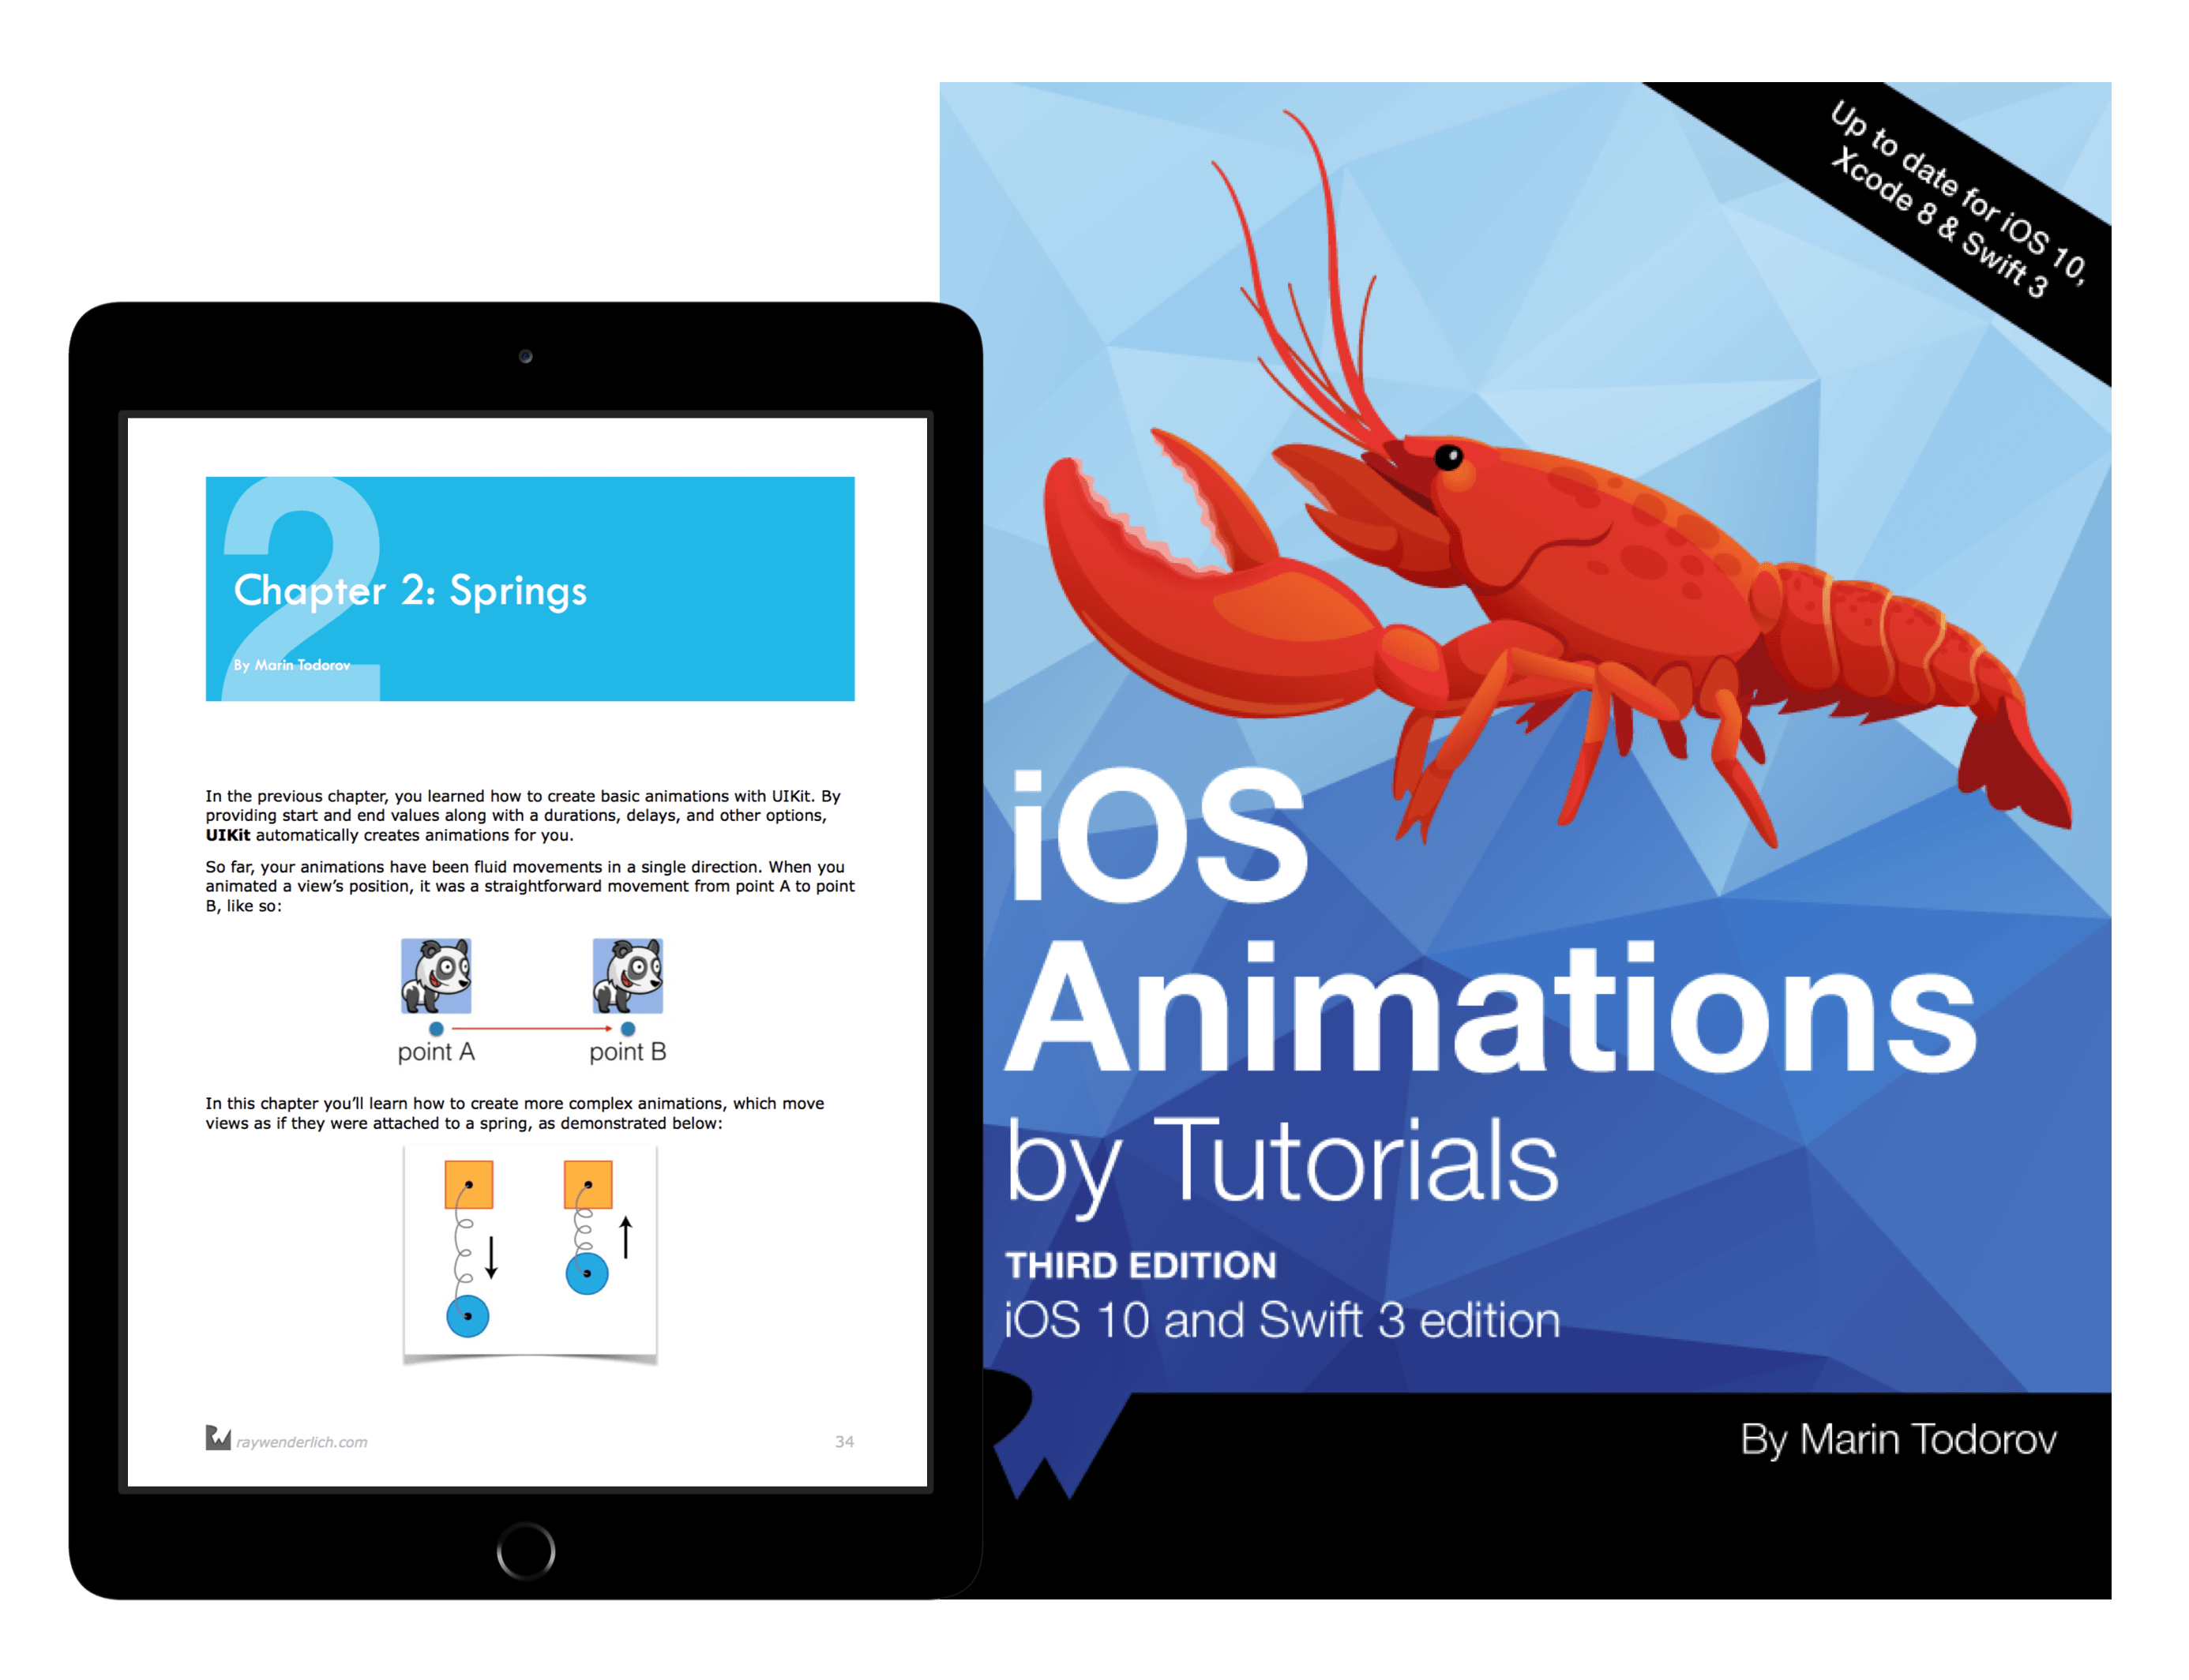 iOS Animations by Tutorials book cover